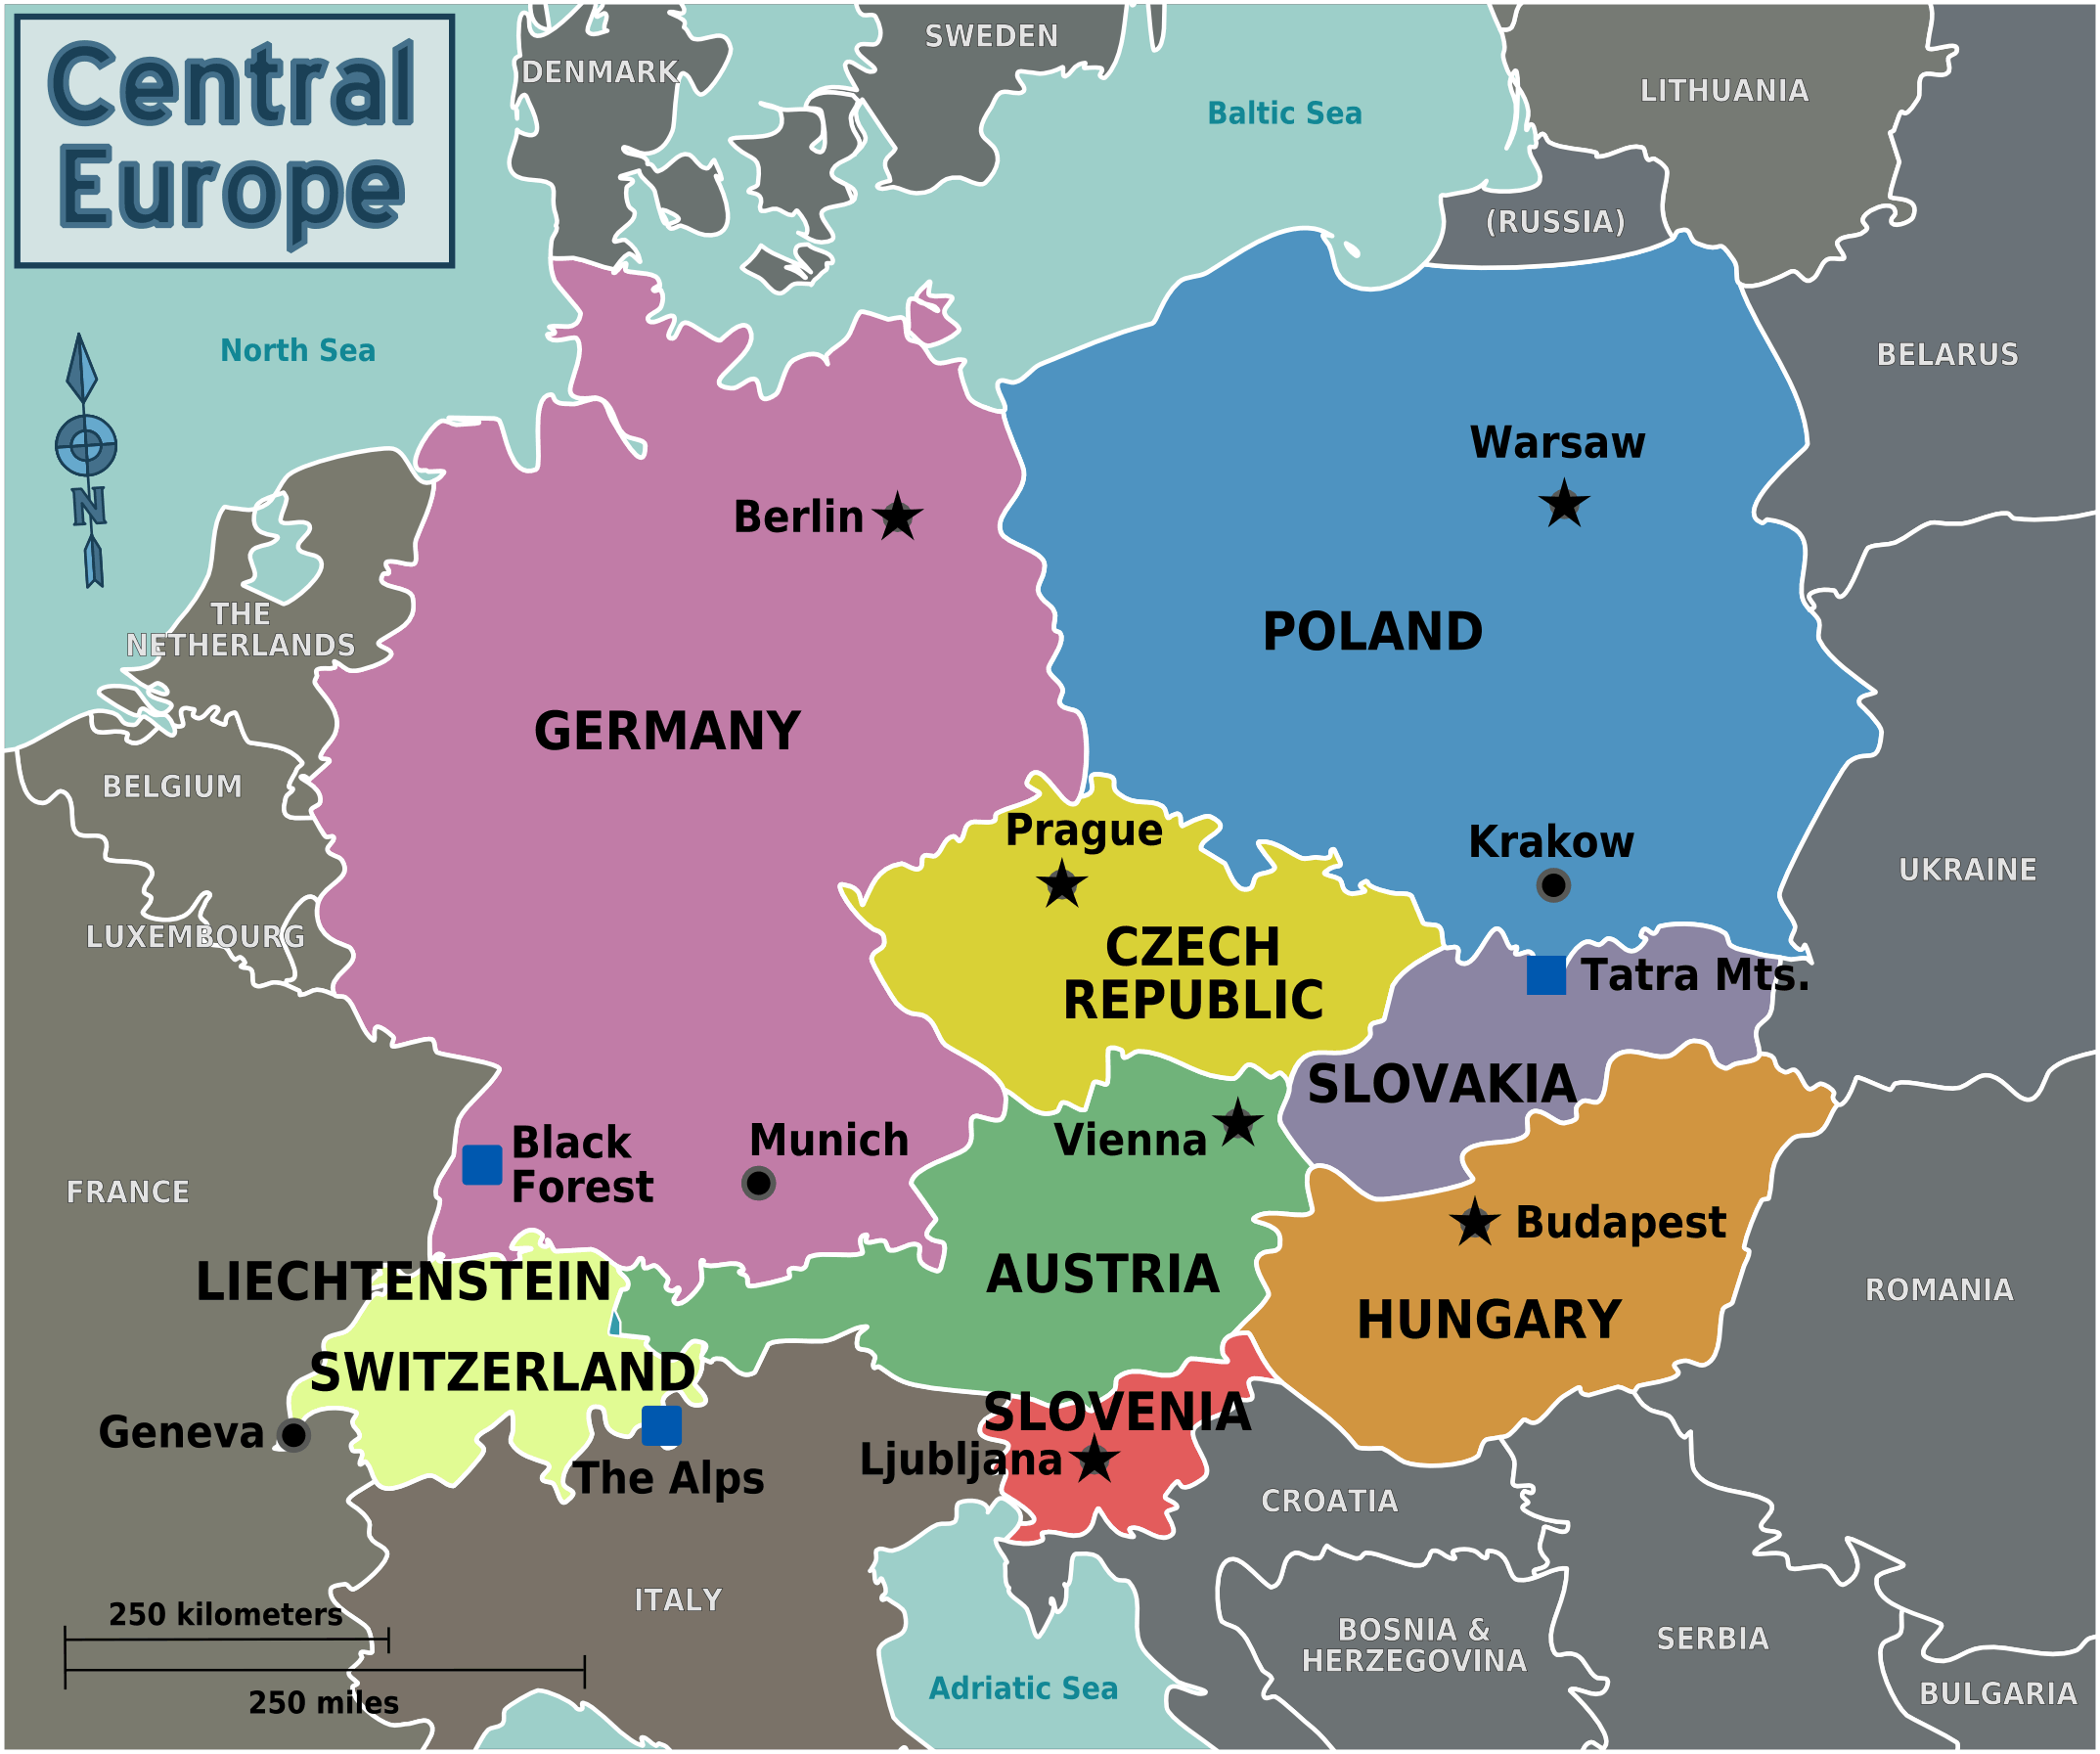 Map Of Central Europe With Capitals For Each Country All Things